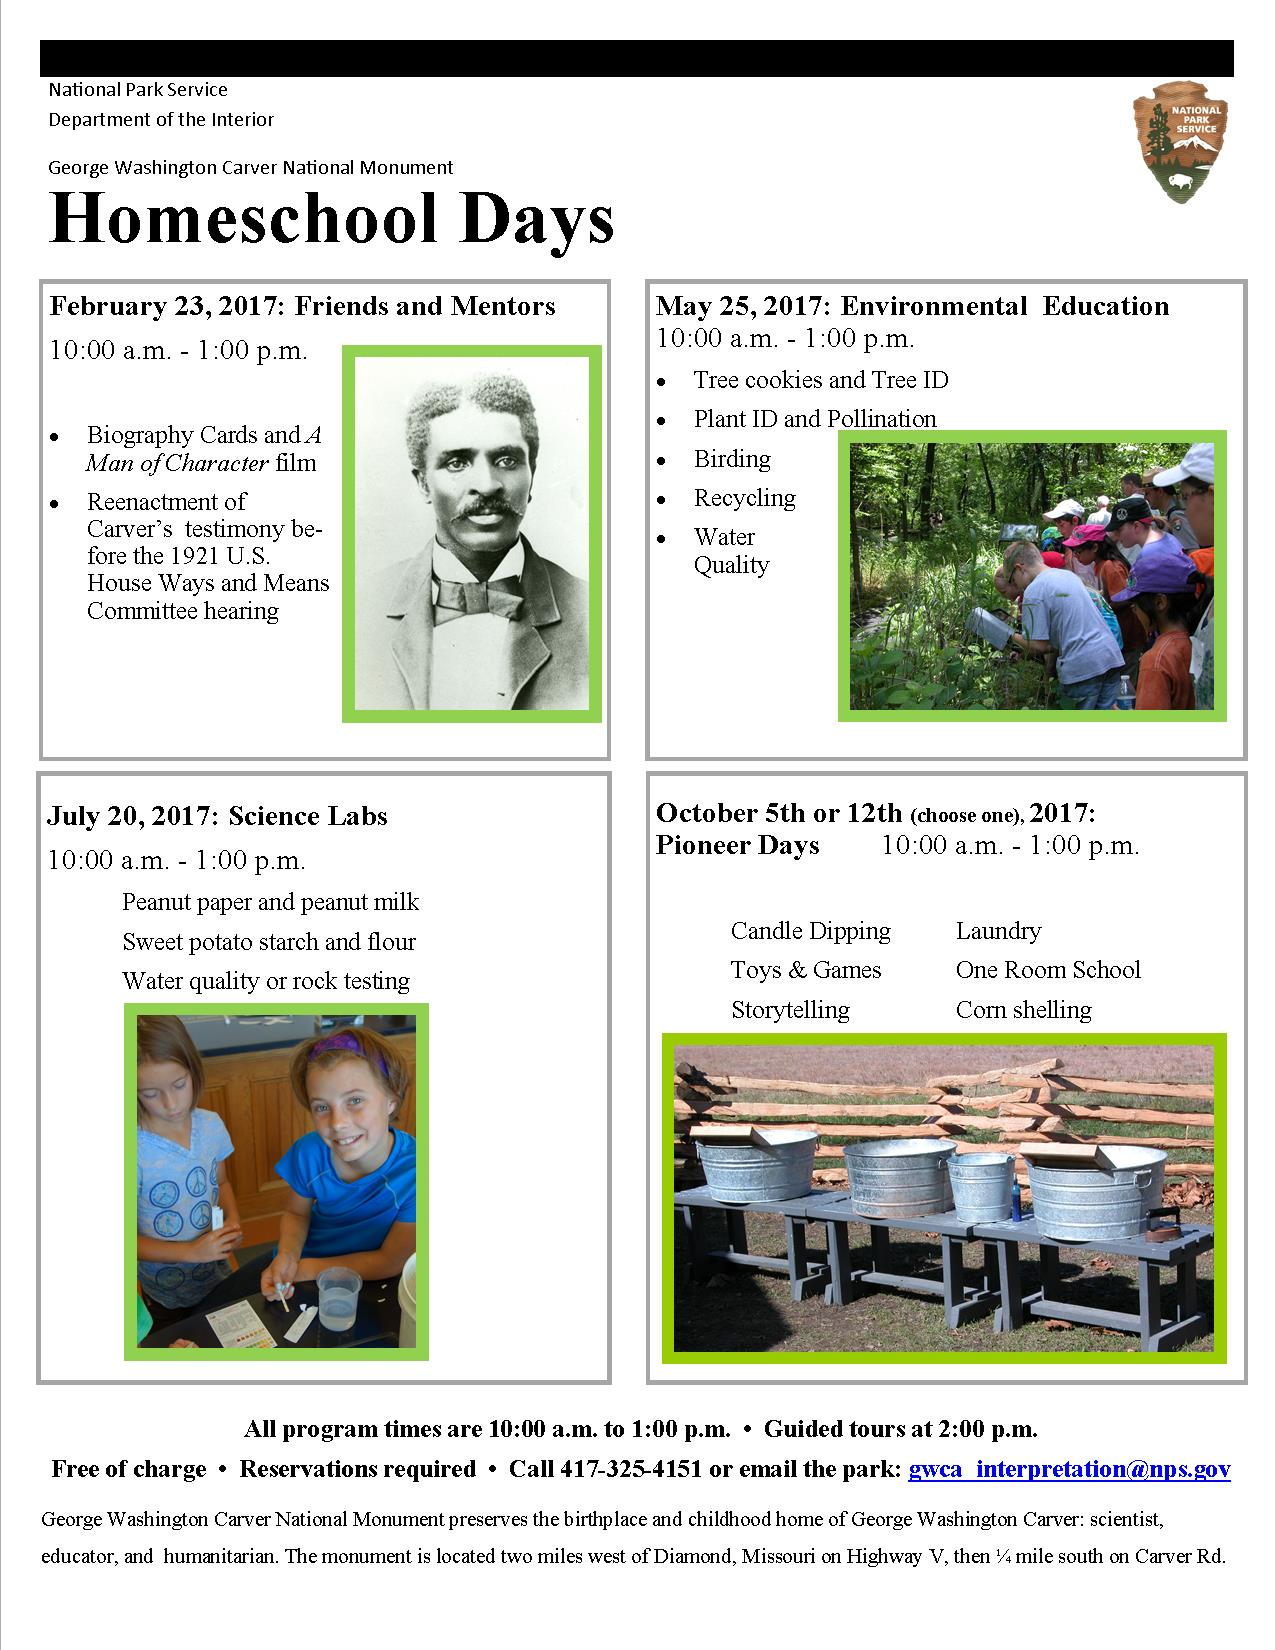 plan a field trip george washington carver national monument poster for homeschool days at the park the poster has four pictures one of